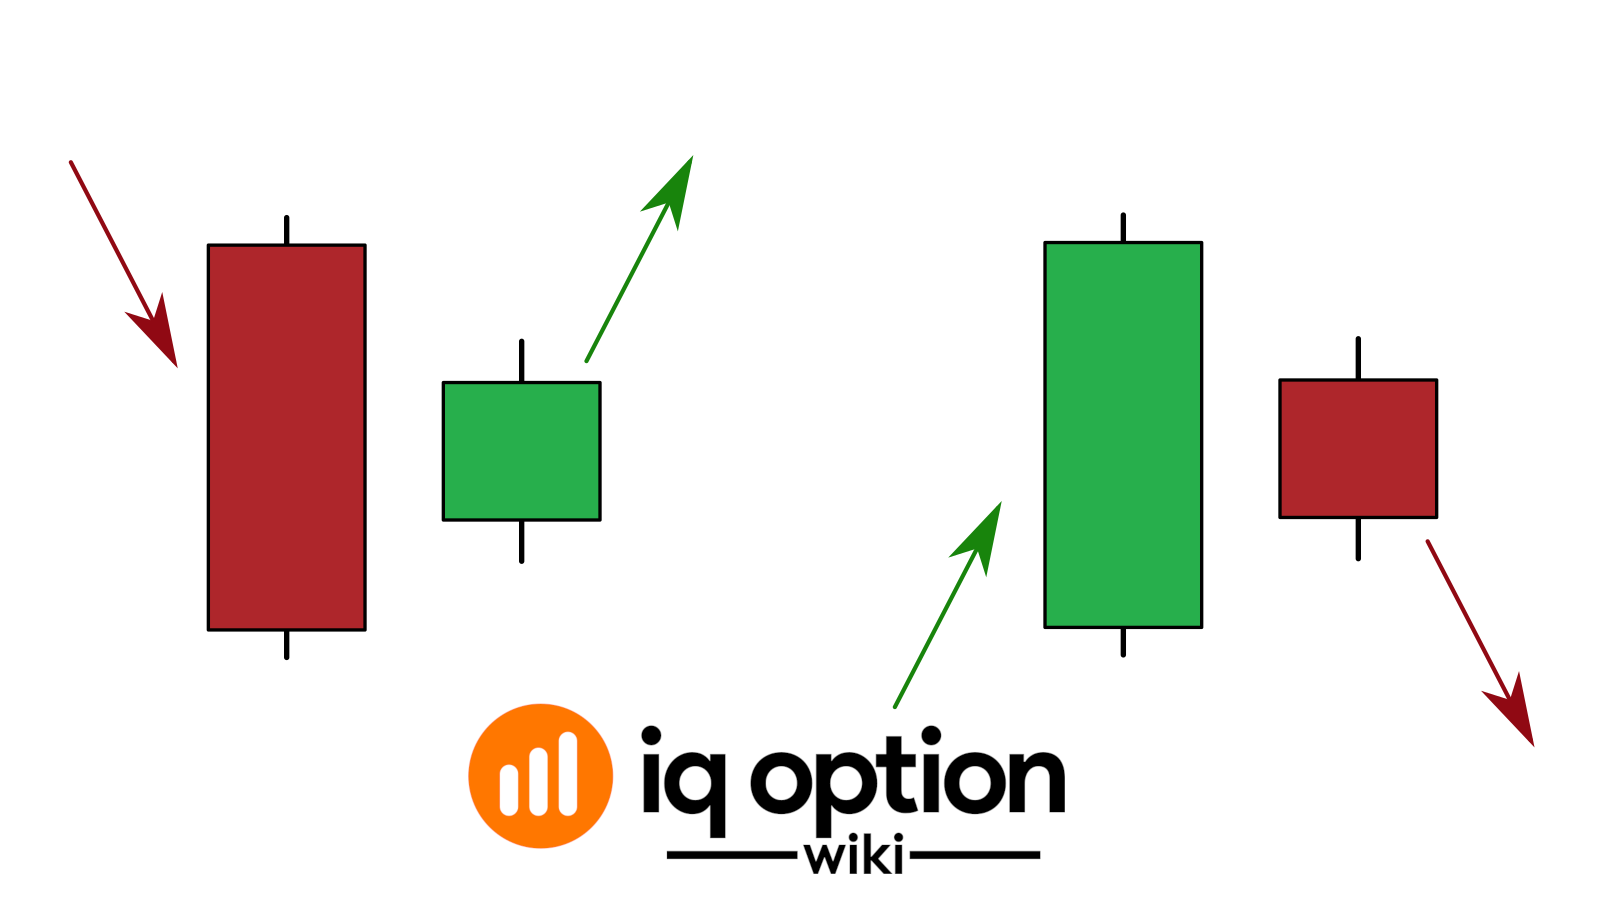 Guide for Using Harami Candles to Determine Top and Bottom of Trends on IQ Option 5